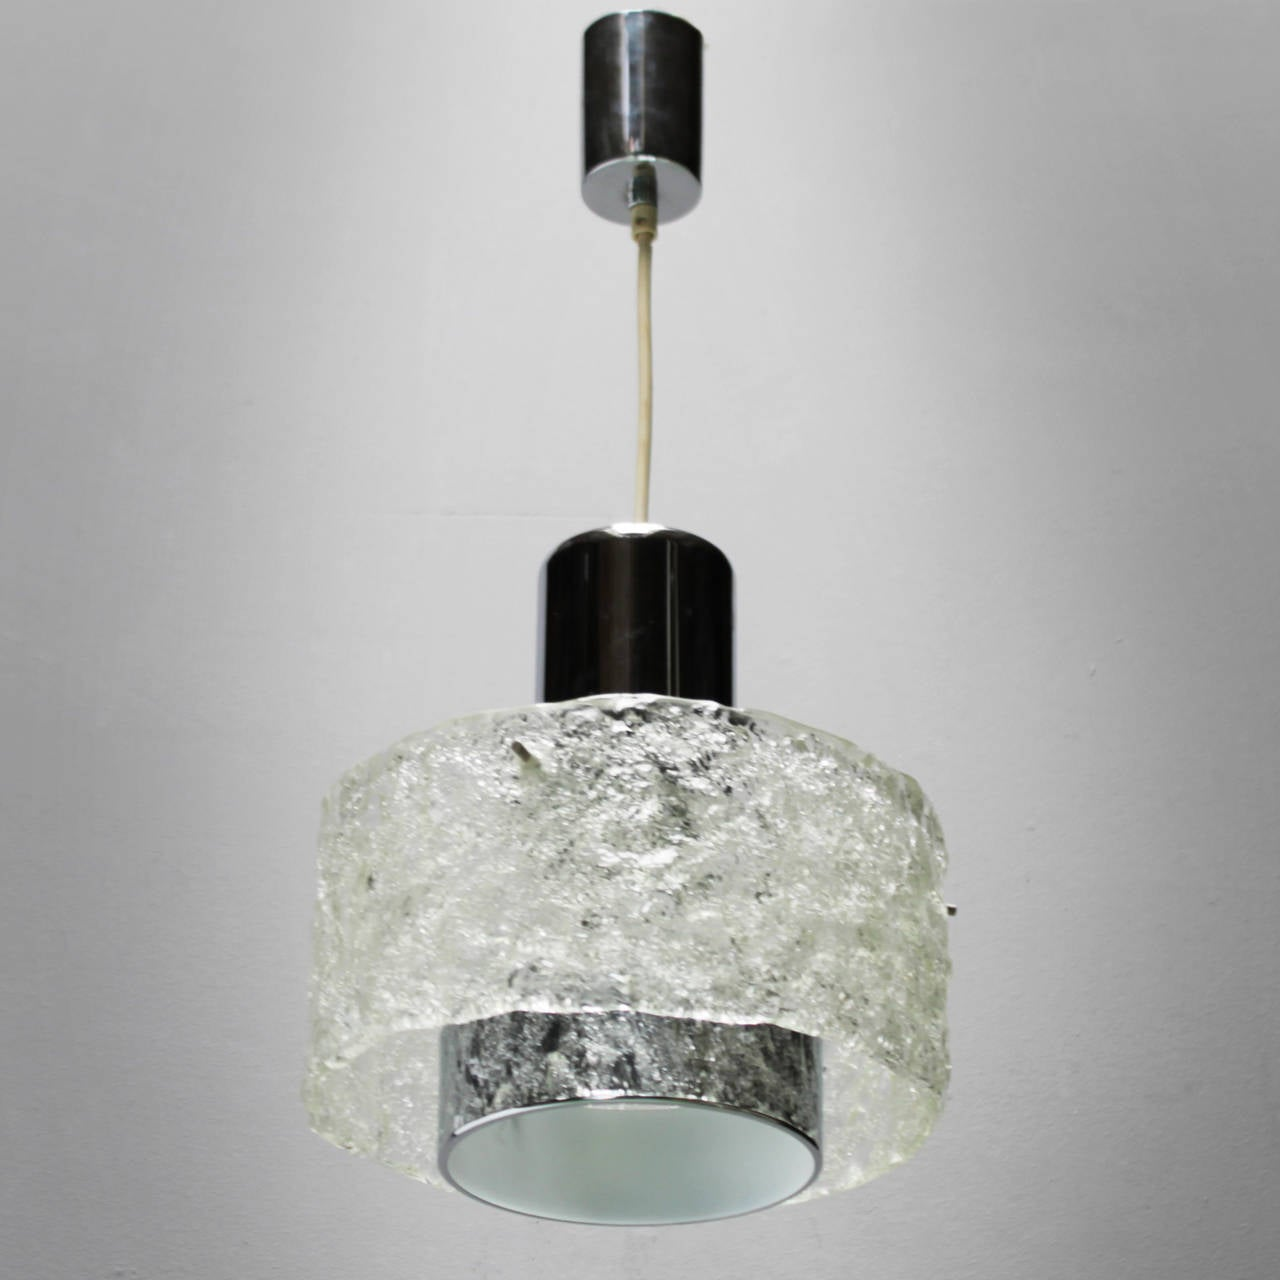 Pendant in the style of Kalmar. Frosted 'ice' glass and chrome.